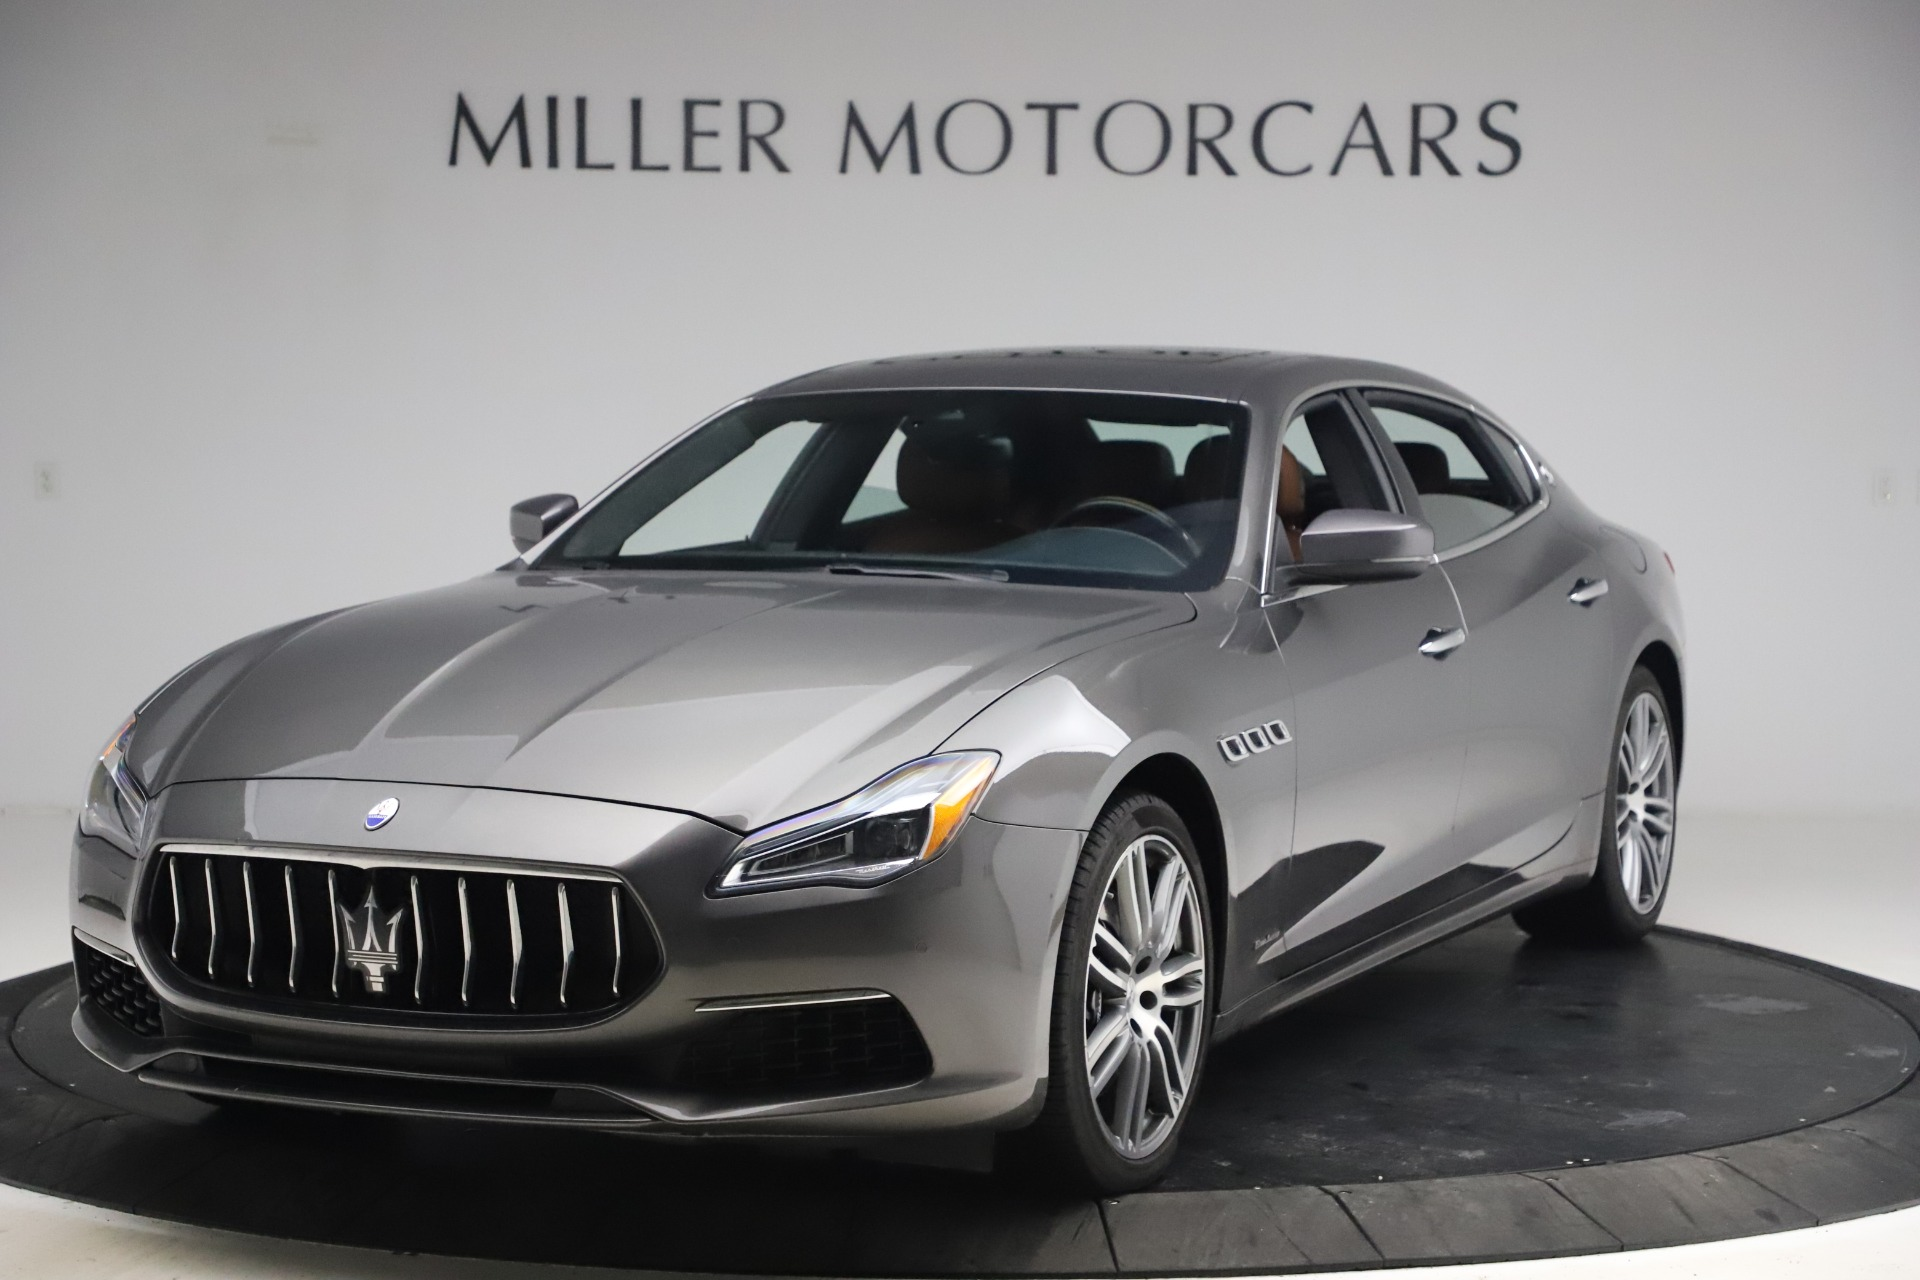 New 2018 Maserati Quattroporte S Q4 GranLusso For Sale In Greenwich, CT. Alfa Romeo of Greenwich, M2015